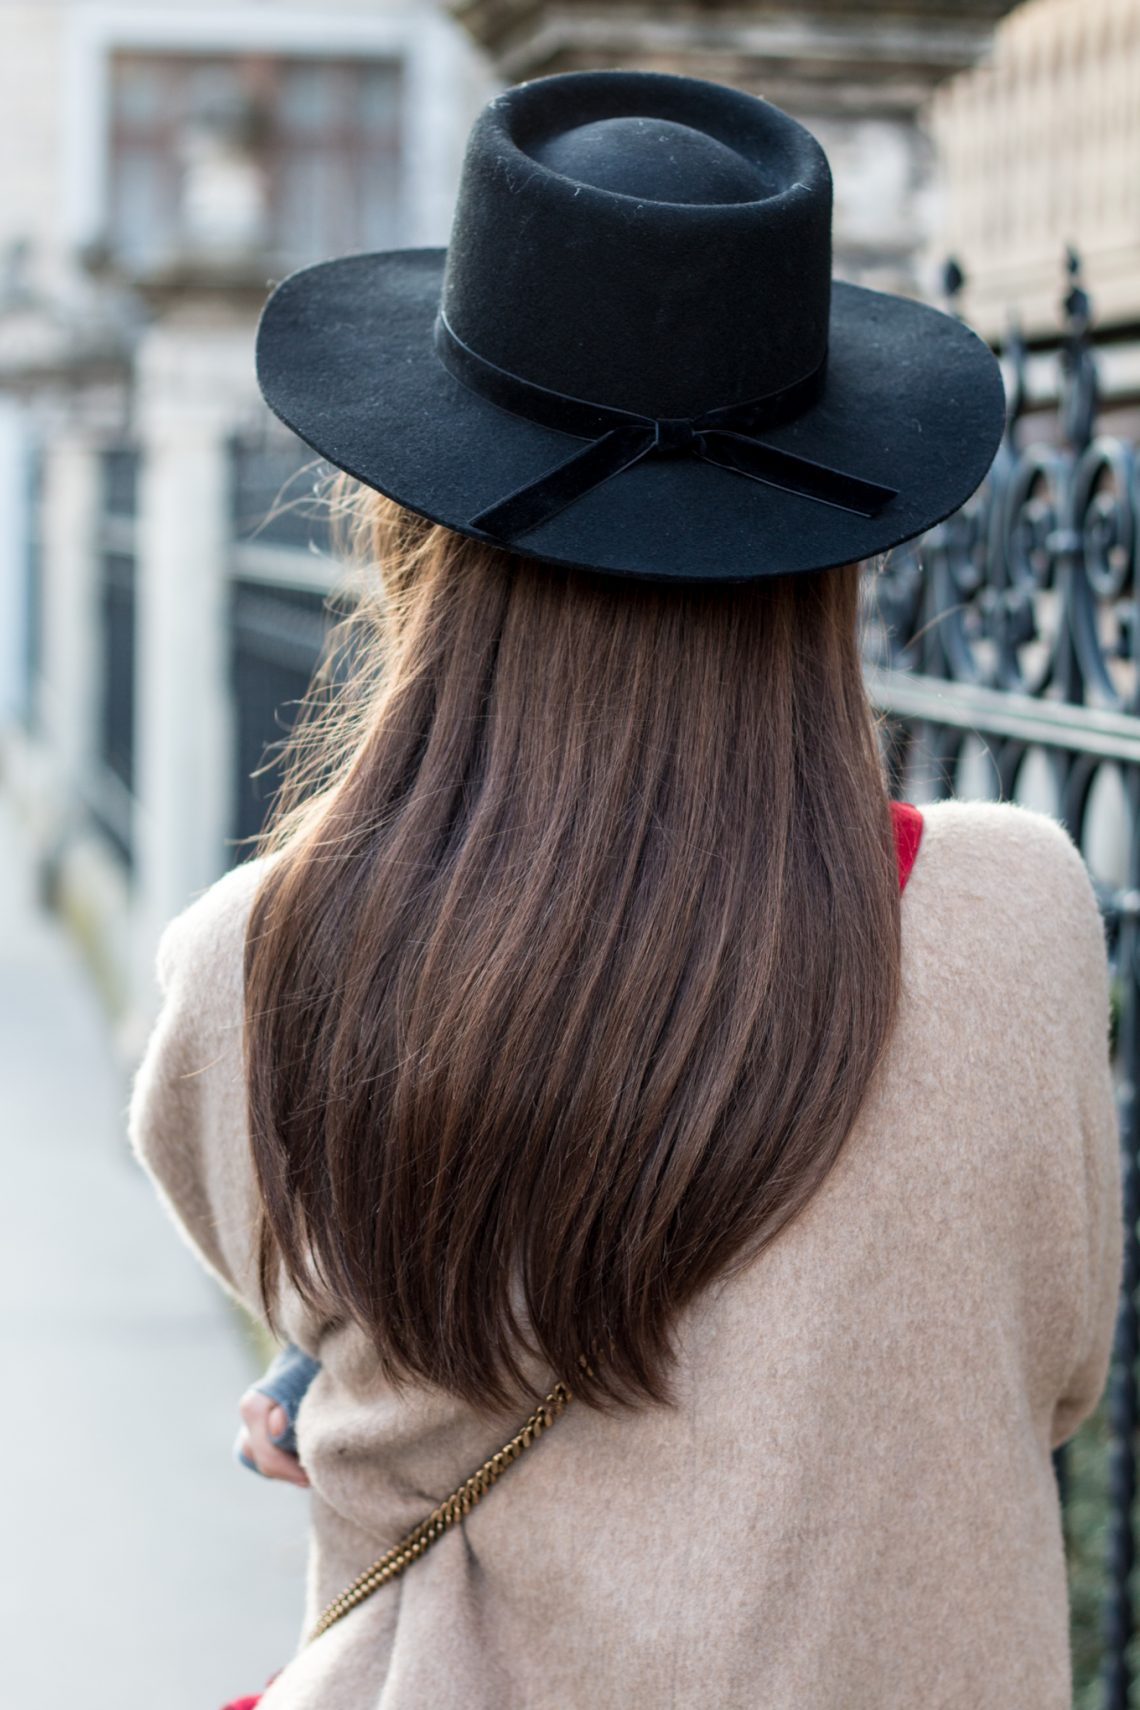 Editor's Pick: Black Hats